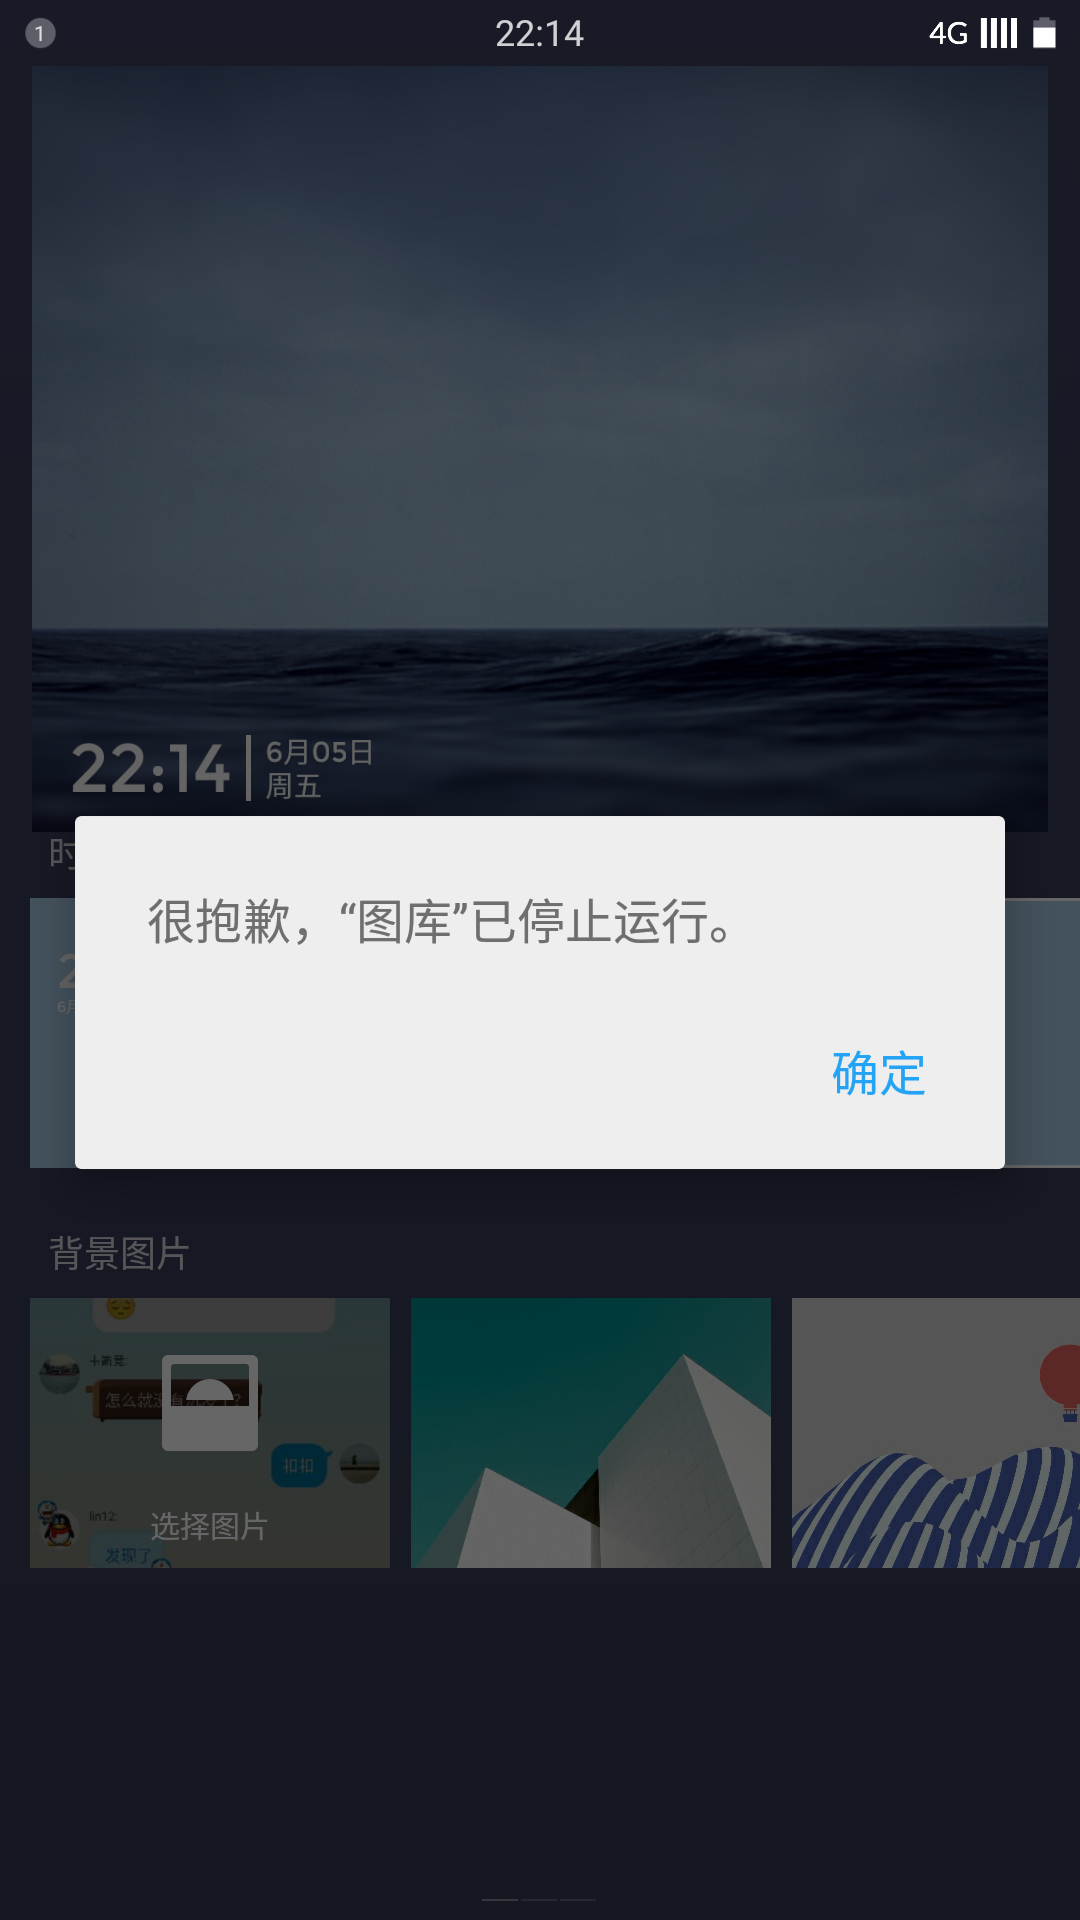 Screenshot_2015-06-05-22-15-01.png